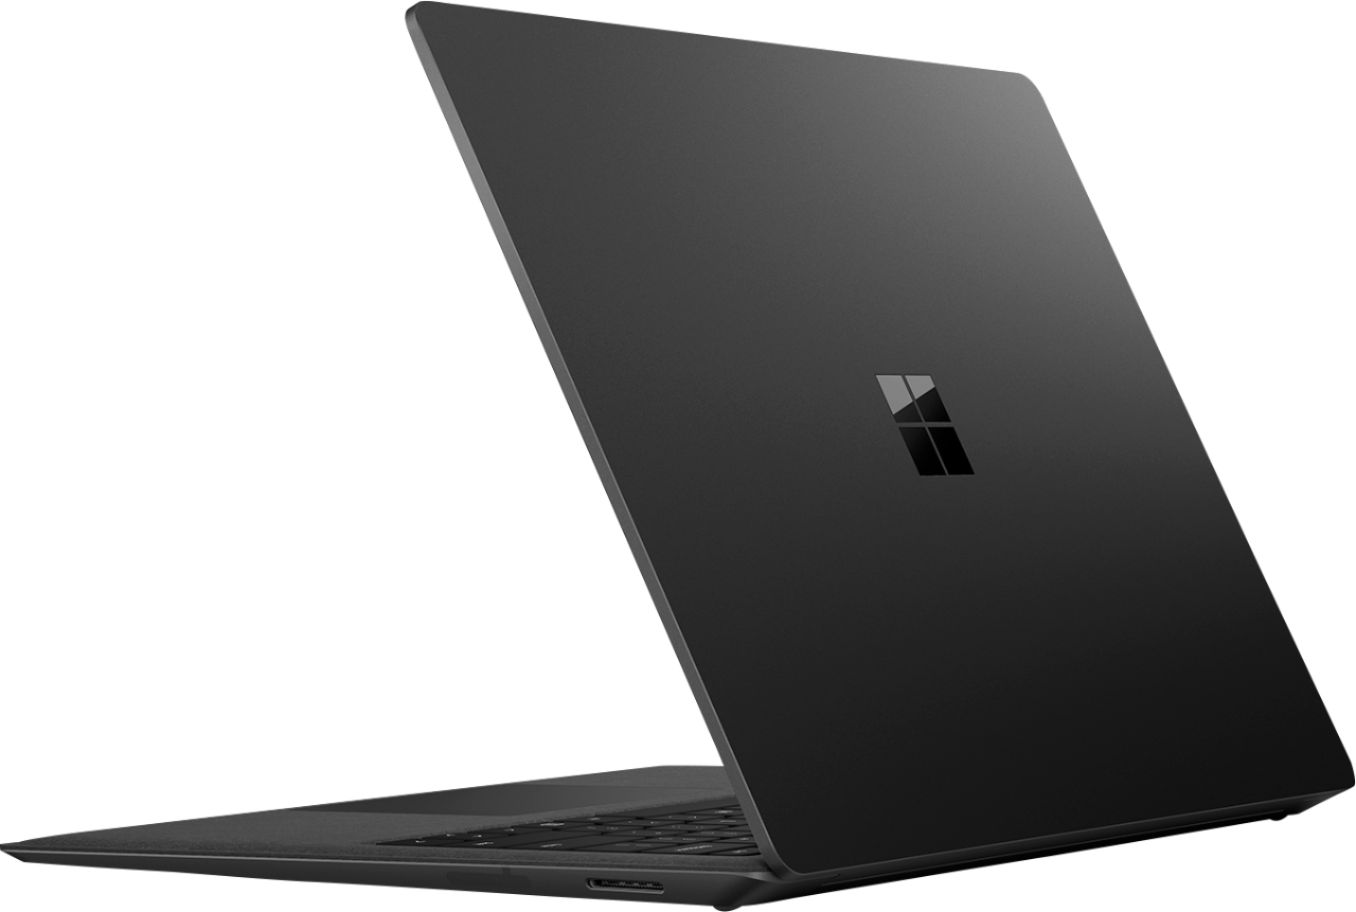 """Alt View Zoom 12. Microsoft - Geek Squad Certified Refurbished Surface Laptop 2 - 13.5"""" Touch Screen - Intel Core i5 - 8GB - 256GB SSD - Black."""